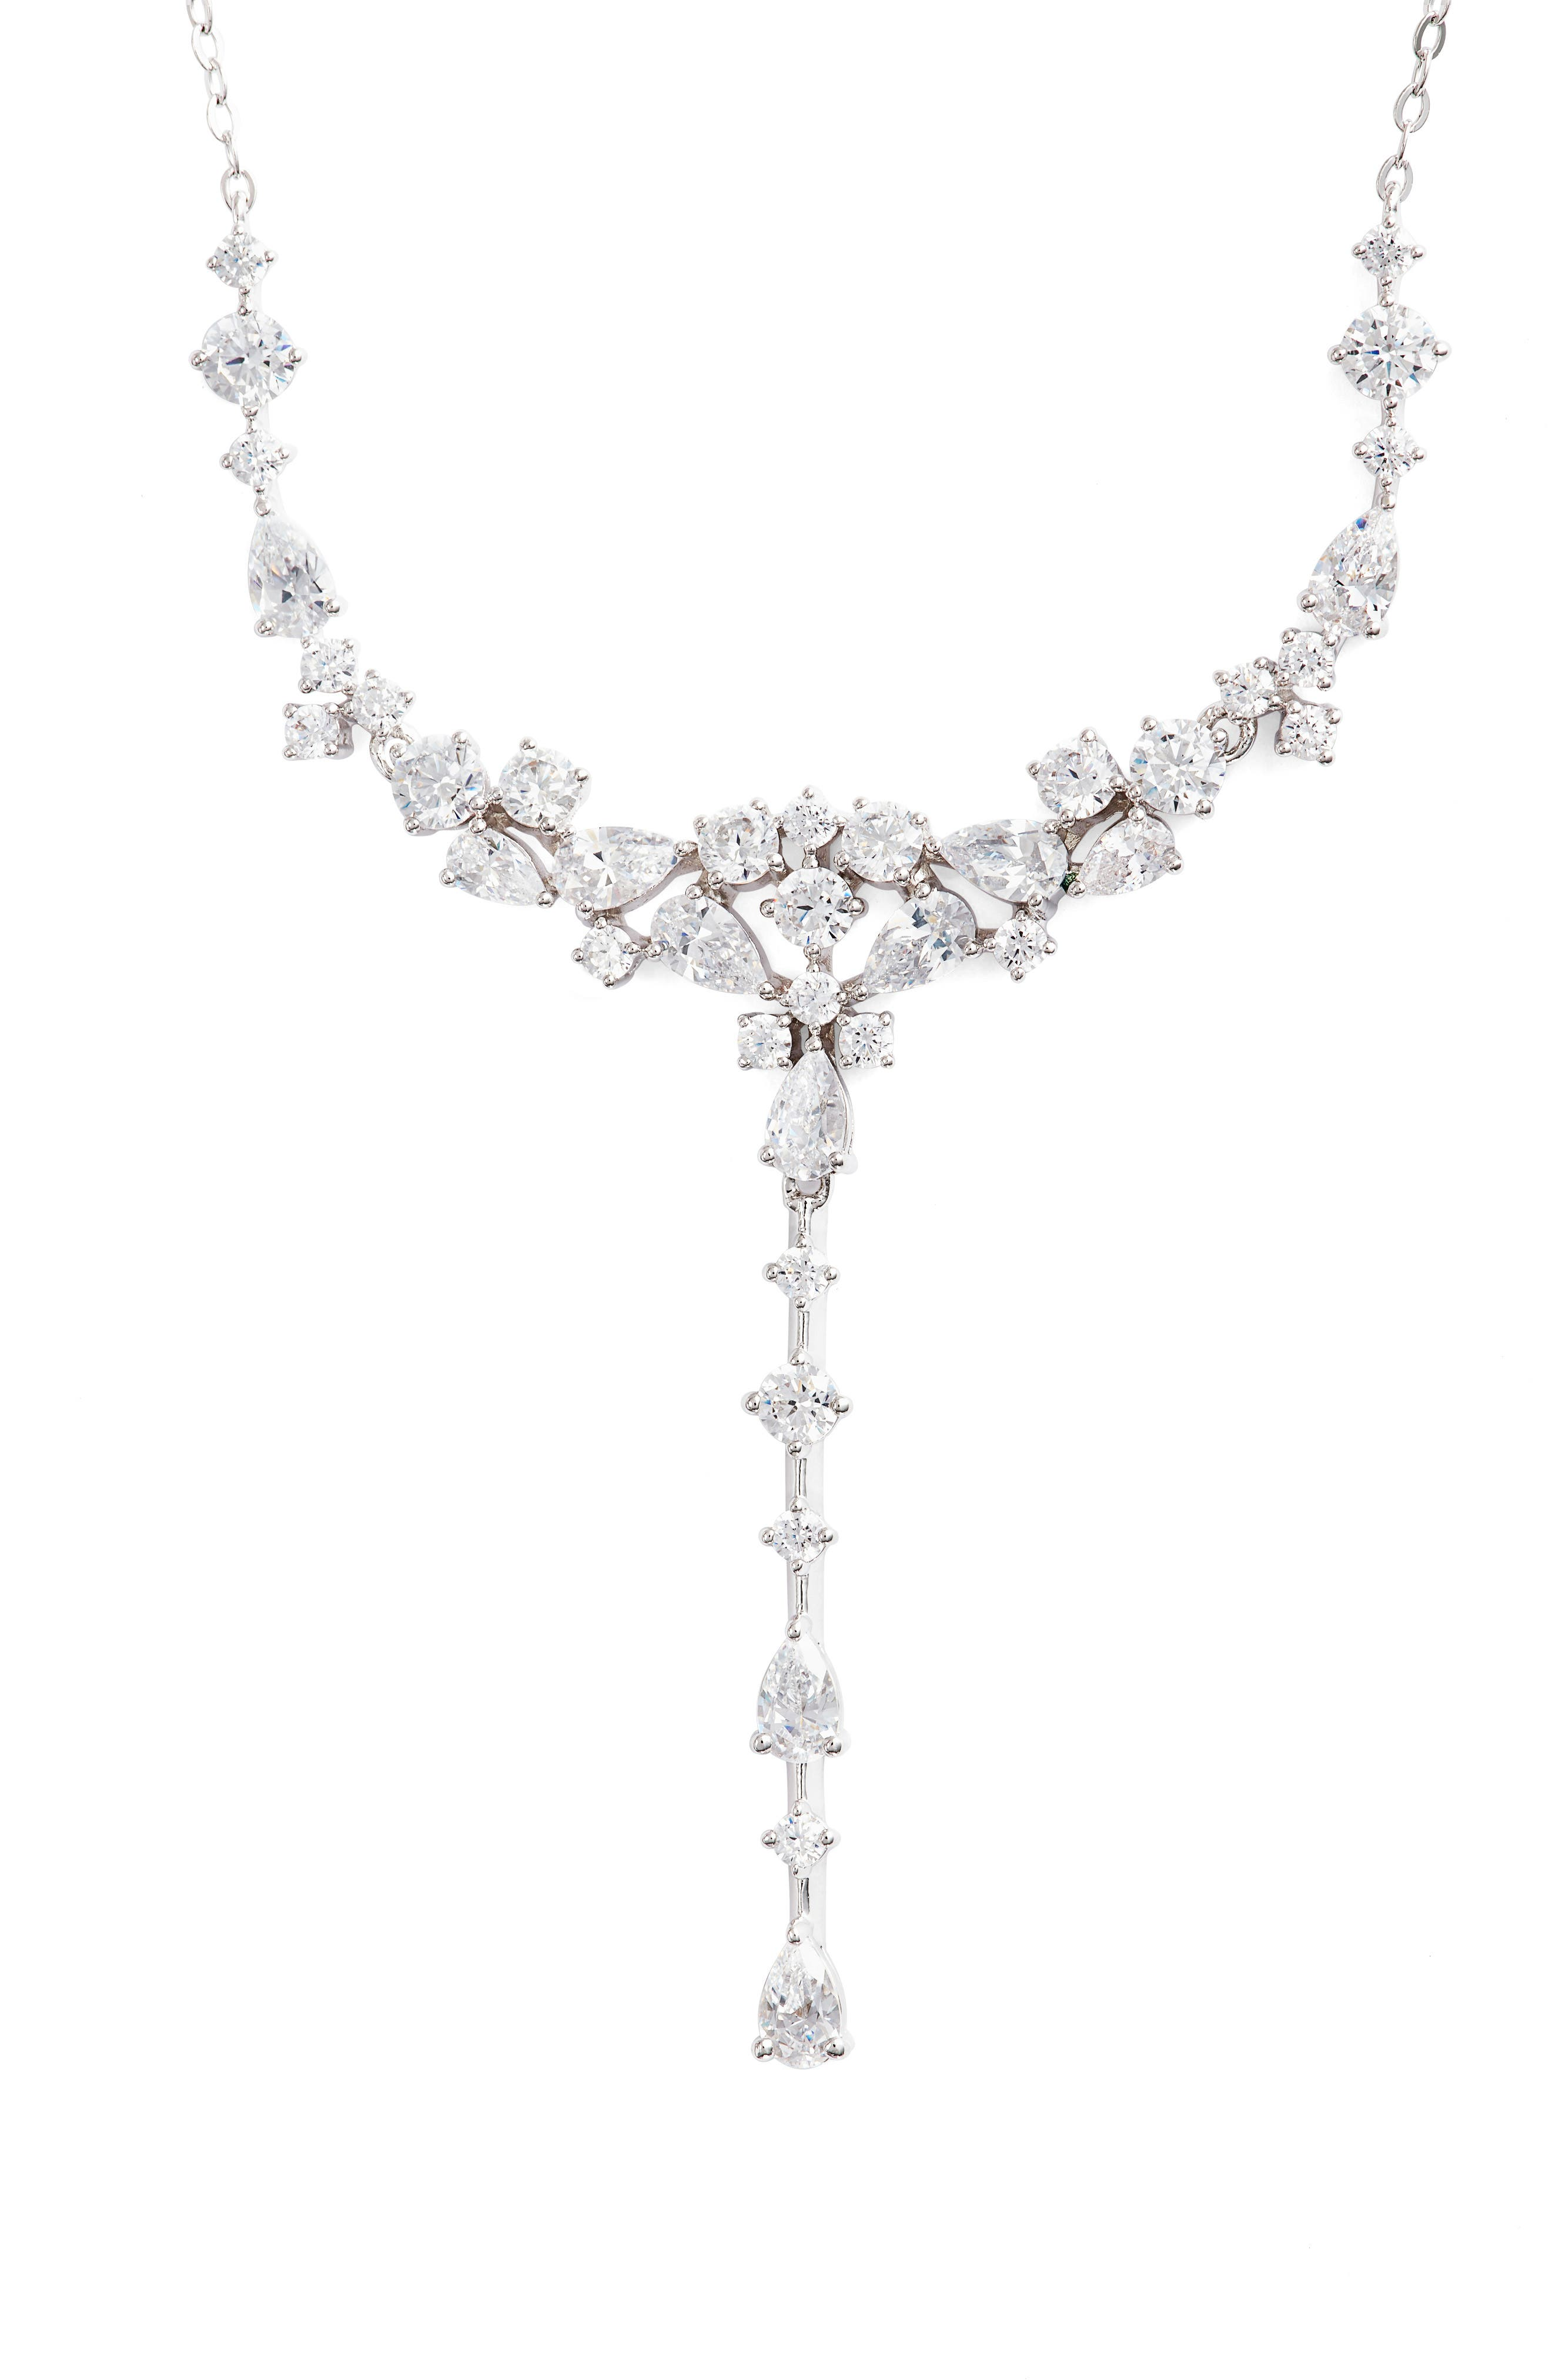 Cubic Zirconia Necklace,                             Main thumbnail 1, color,                             SILVER